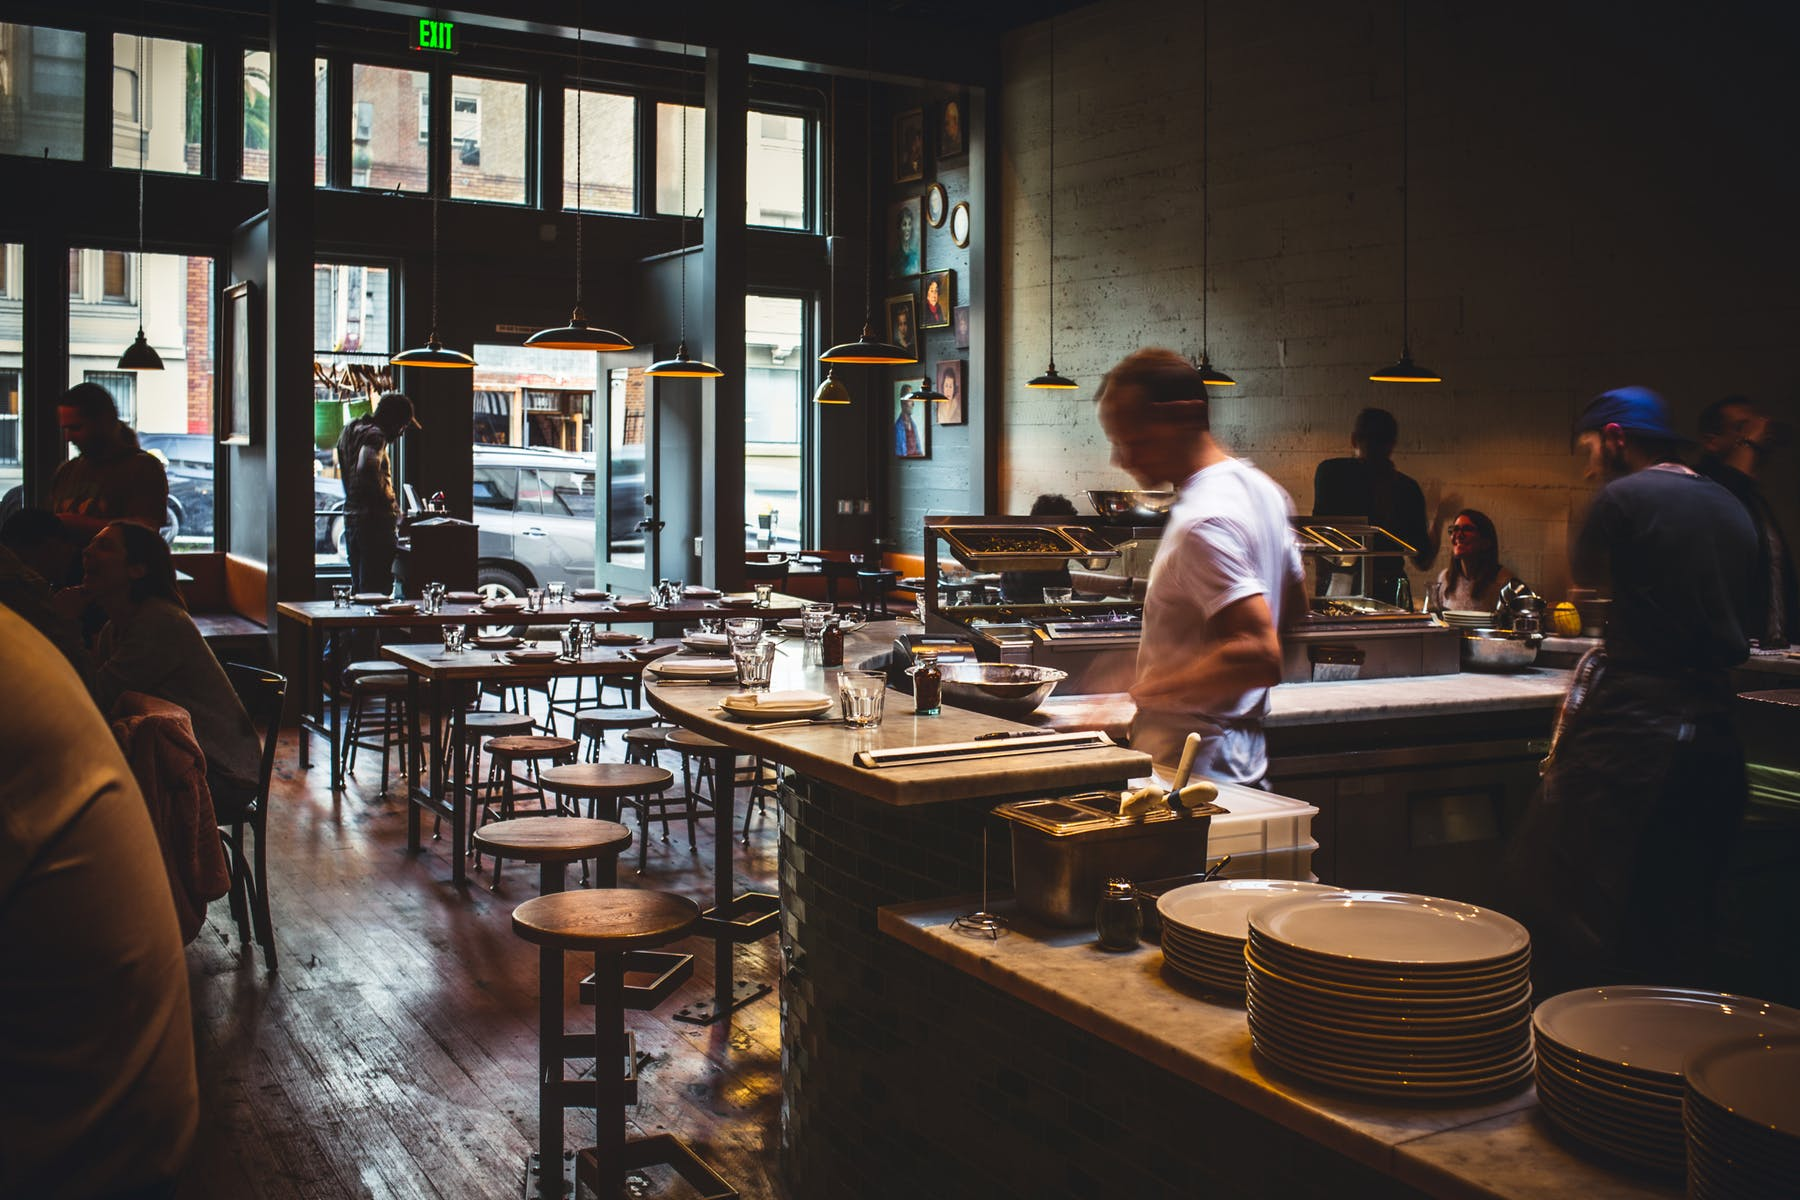 a man in the cooking area of the restaurant